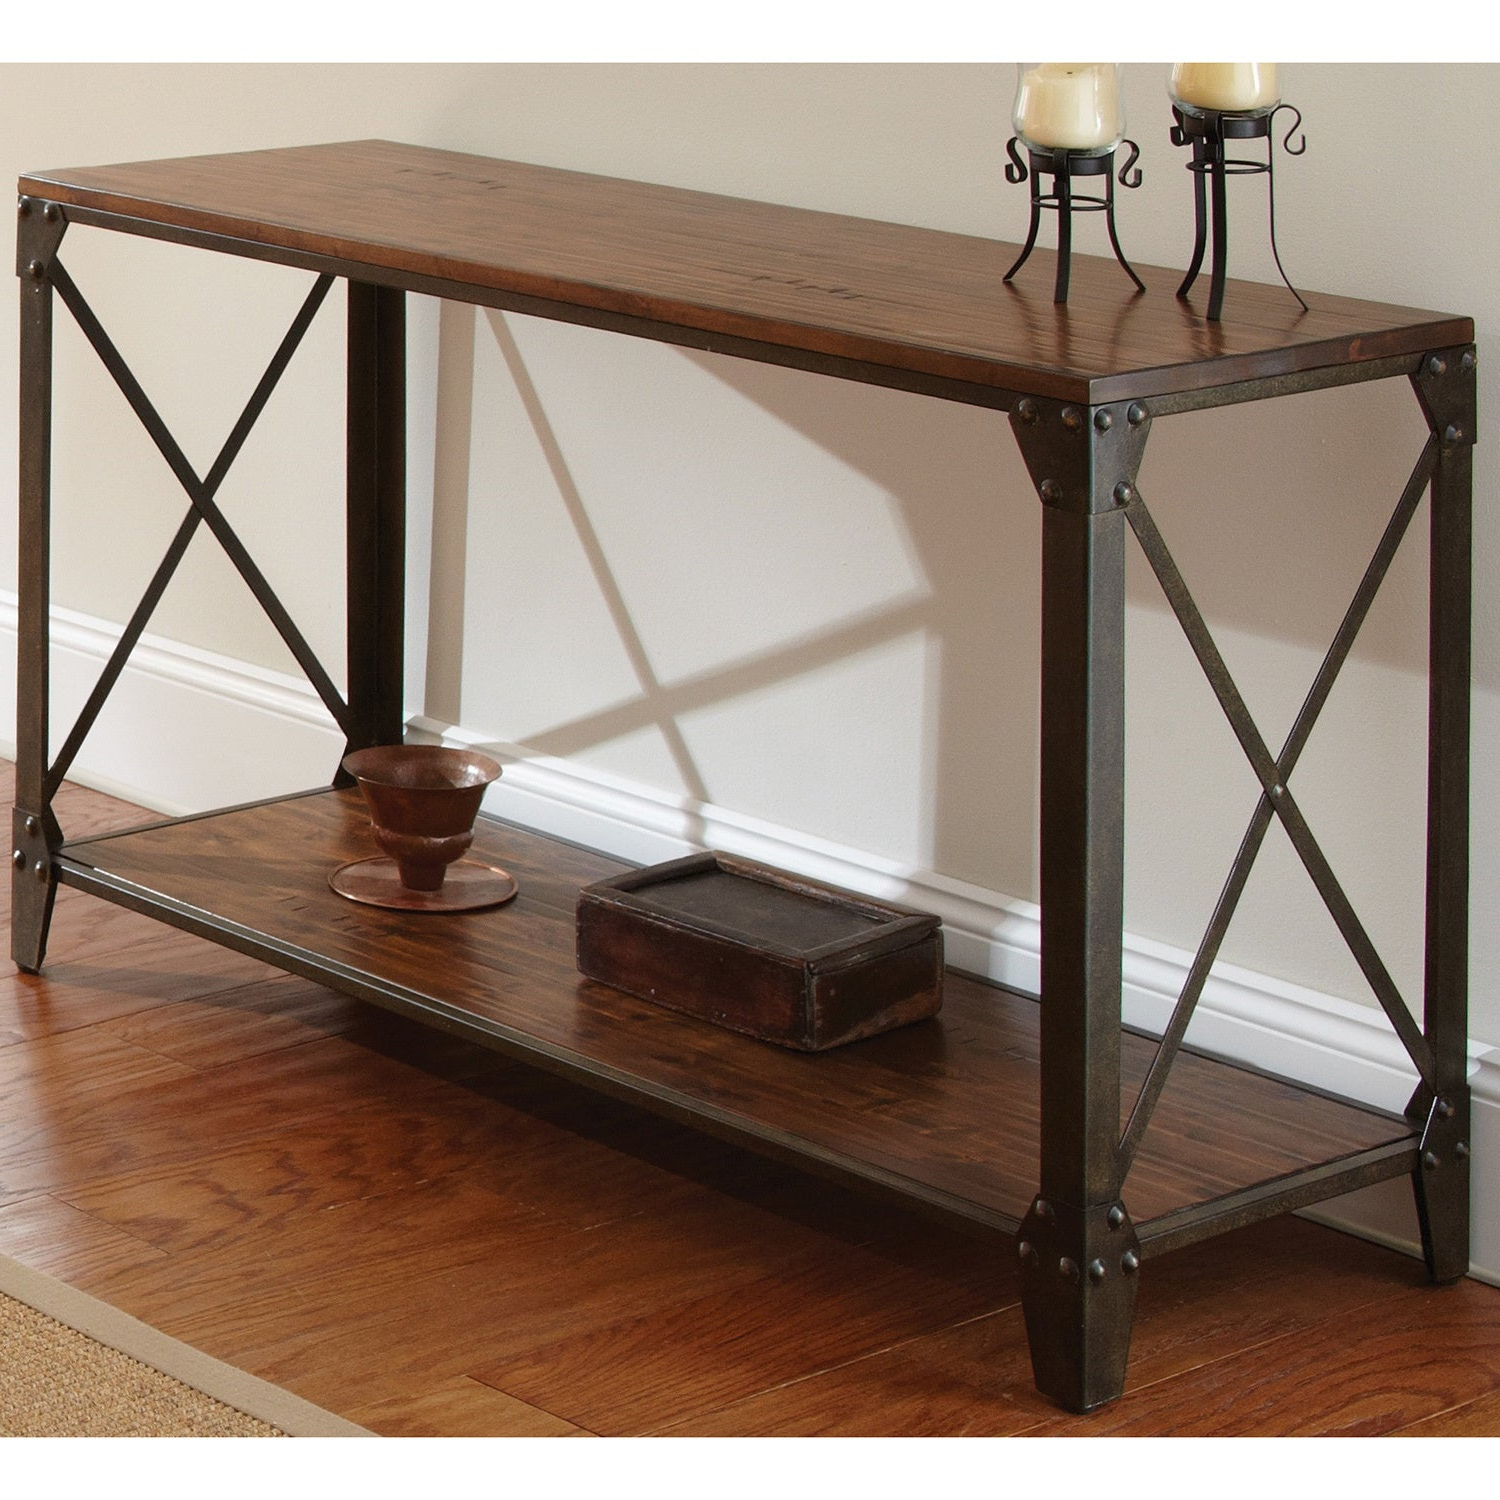 Carbon Loft Fischer Solid Wood And Iron Rustic Sofa Table Pertaining To Widely Used Carbon Loft Fischer Brown Solid Birch And Iron Rustic Coffee Tables (View 5 of 20)